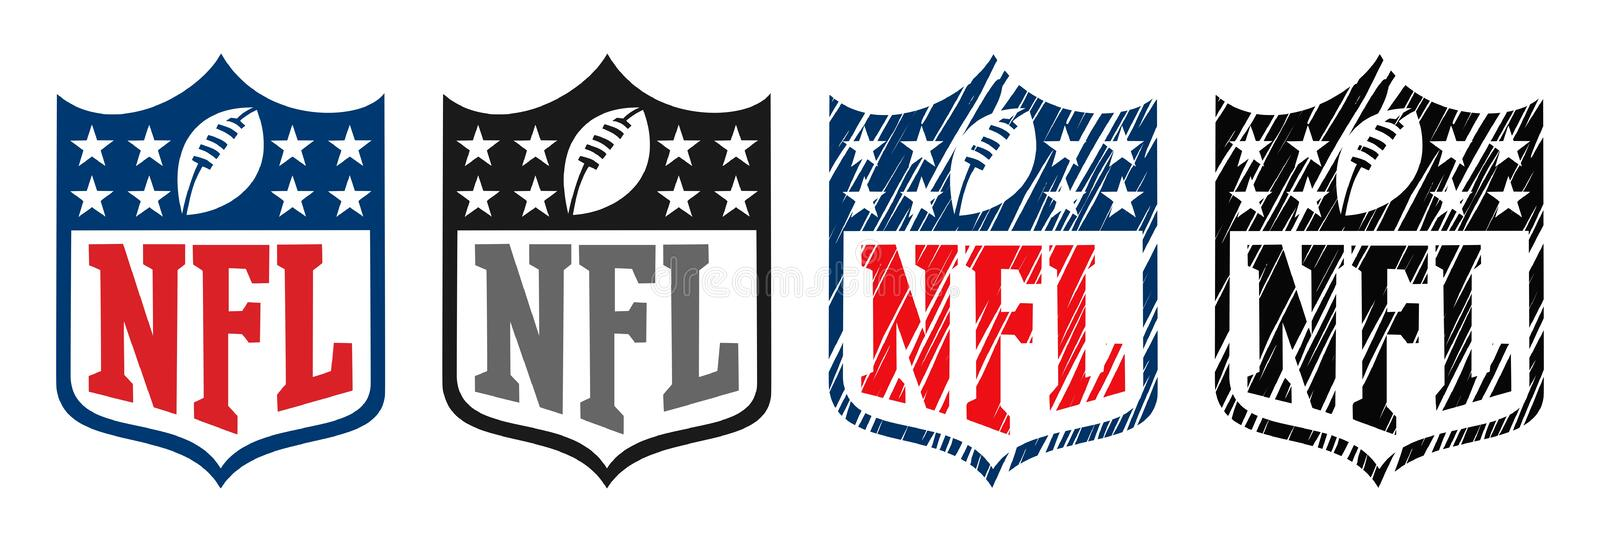 NFL logo. Vector illustration of the NFL national football league logo isolated on white background - classic official version and grunge doodle style modern